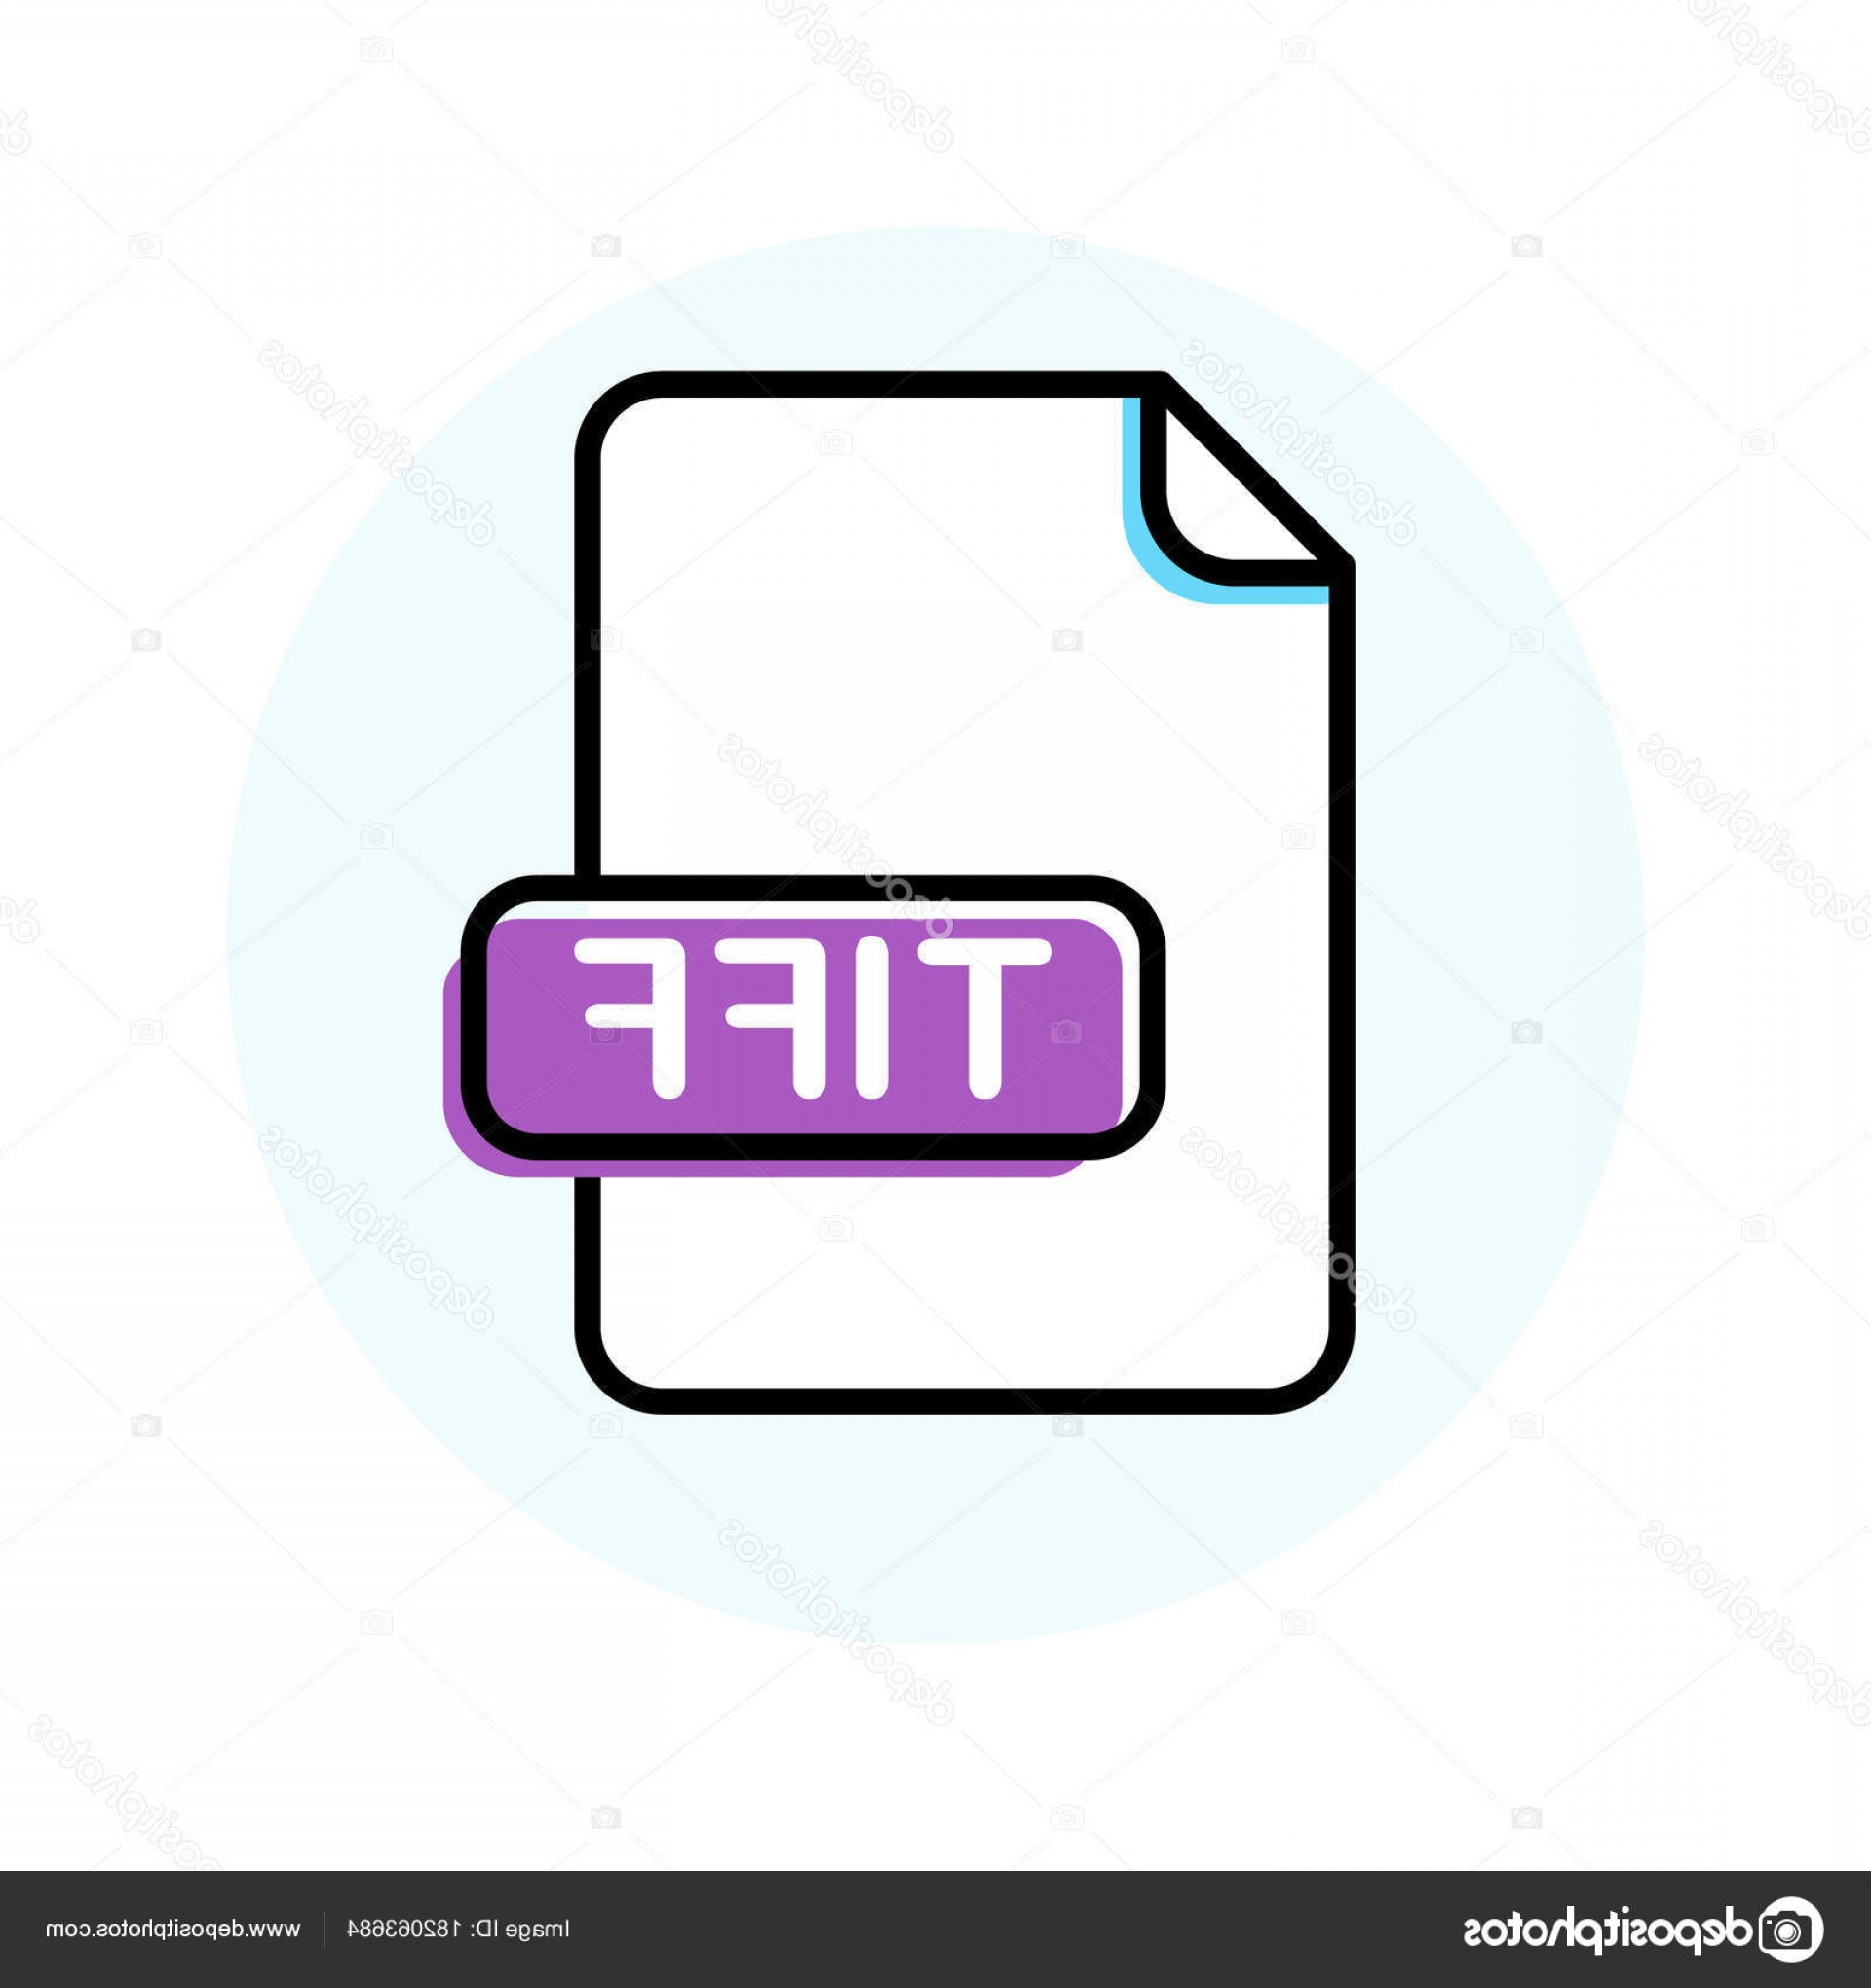 File Extension Vector Art: Stock Illustration Tiff File Format Extension Color